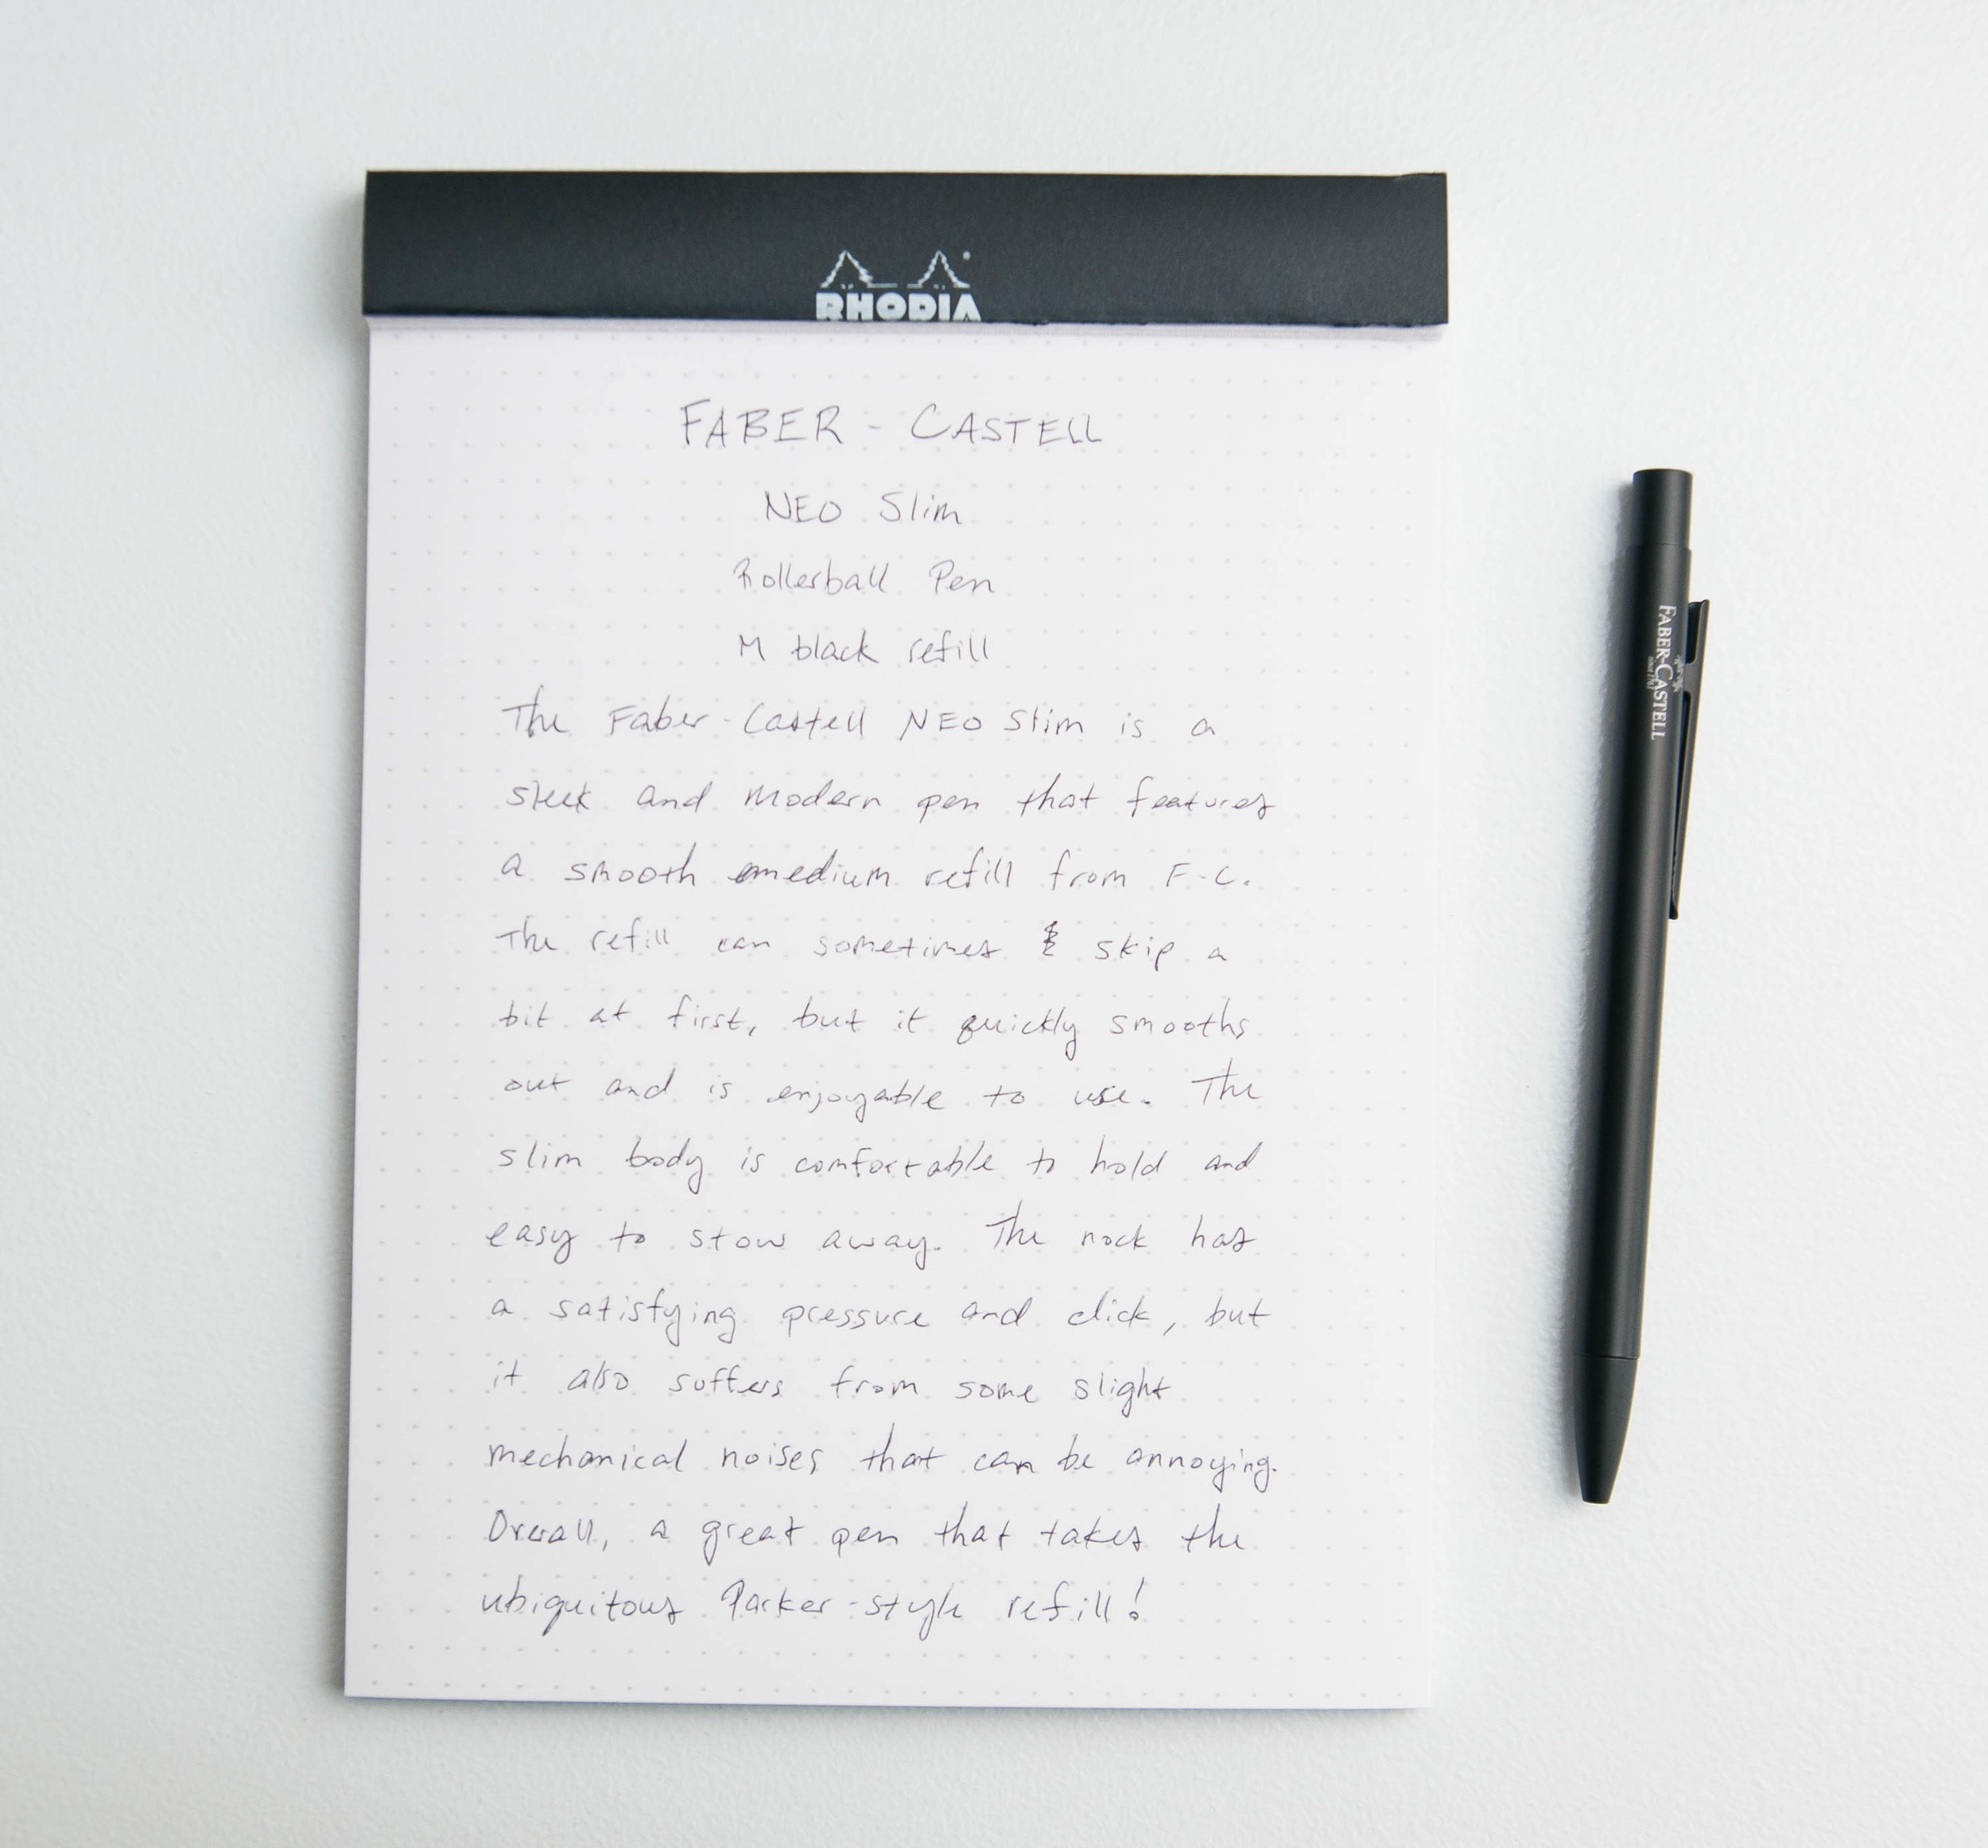 Faber-Castell NEO Slim Rollerball Pen Writing